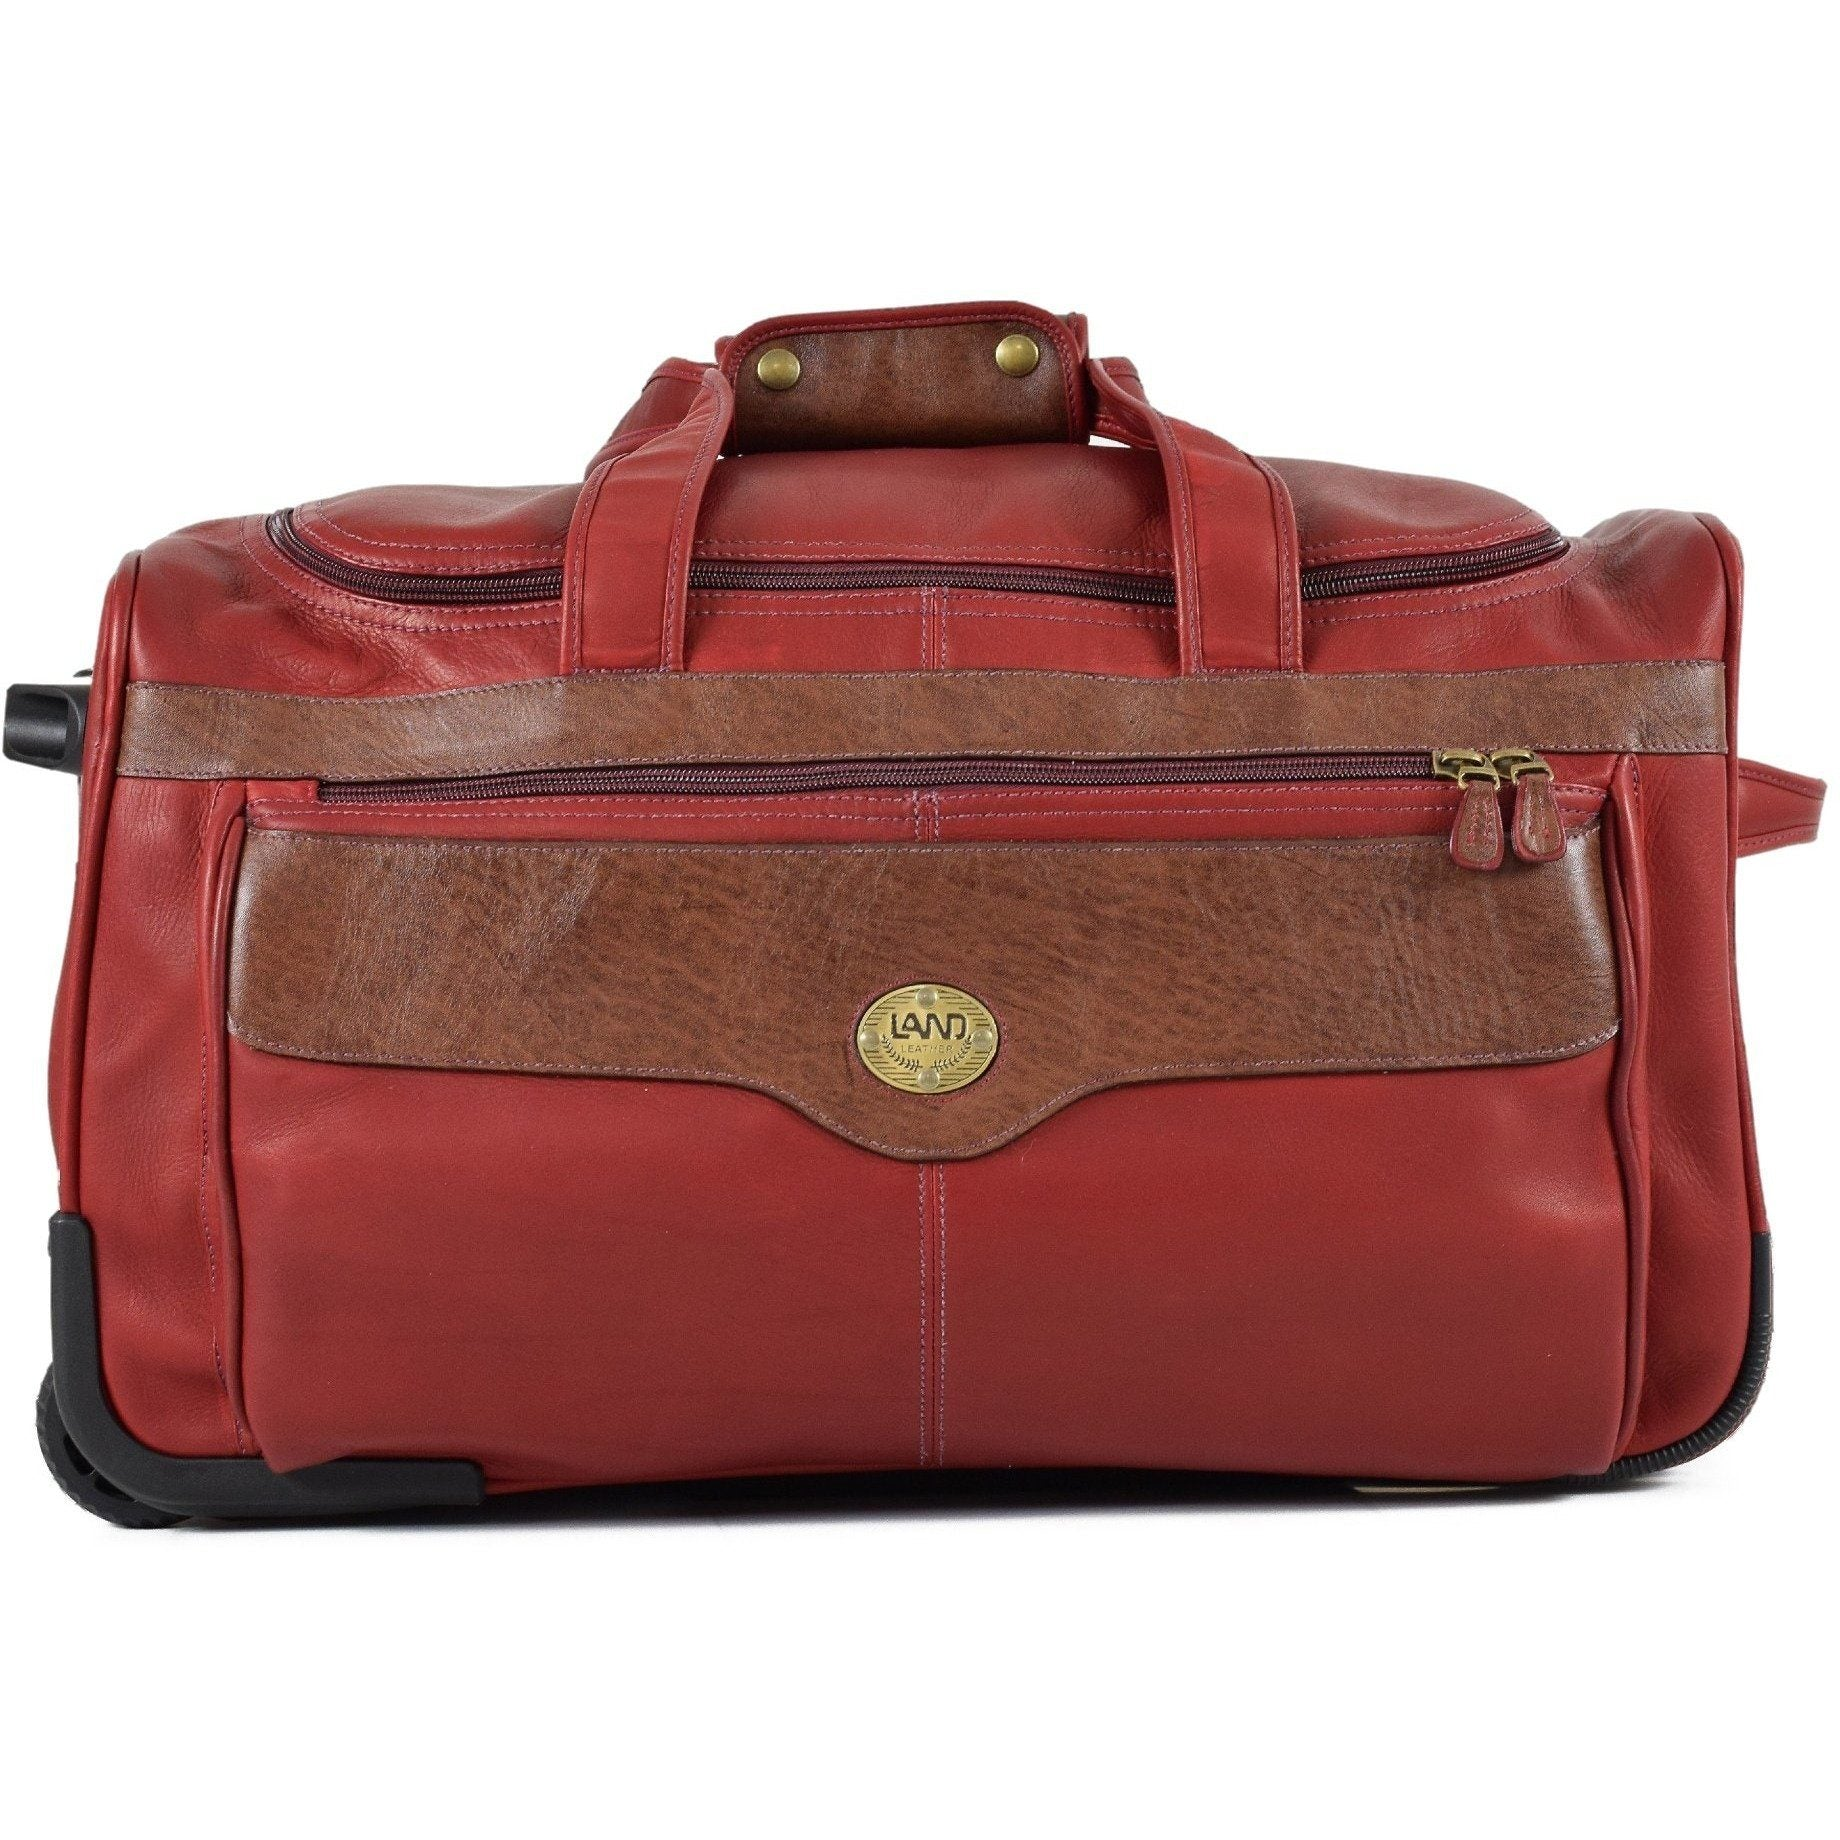 Anniversary Wheeled Duffel Bag, Duffel Bag | LAND Leather